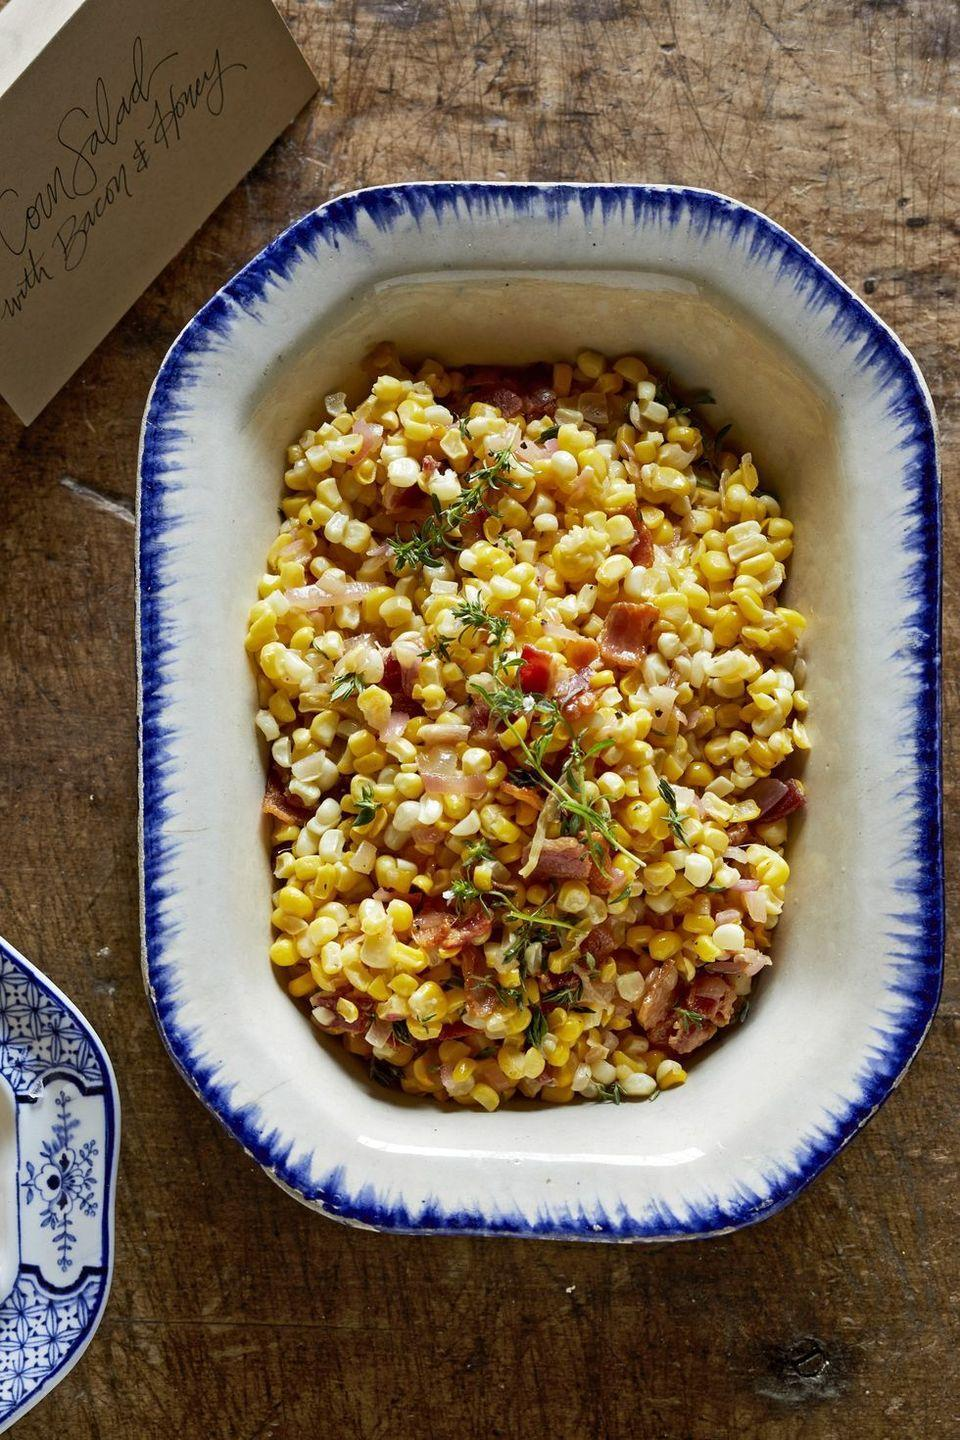 "<p>Crisp bacon meets tart sherry vinegar and sweet honey in this <a href=""https://www.countryliving.com/food-drinks/g883/southern-thanksgiving-1109/"" rel=""nofollow noopener"" target=""_blank"" data-ylk=""slk:Southern"" class=""link rapid-noclick-resp"">Southern</a>-style dish. Pro tip: Make enough for seconds!</p><p><strong><a href=""https://www.countryliving.com/food-drinks/a29134232/corn-salad-with-bacon-and-honey/"" rel=""nofollow noopener"" target=""_blank"" data-ylk=""slk:Get the recipe"" class=""link rapid-noclick-resp"">Get the recipe</a>.</strong></p><p><a class=""link rapid-noclick-resp"" href=""https://www.amazon.com/Servers-Eco-Friendly-Serving-Utensils-Display/dp/B0845V2KQH/?tag=syn-yahoo-20&ascsubtag=%5Bartid%7C10050.g.34553078%5Bsrc%7Cyahoo-us"" rel=""nofollow noopener"" target=""_blank"" data-ylk=""slk:SHOP PORTABLE SALAD BOWLS"">SHOP PORTABLE SALAD BOWLS</a></p>"